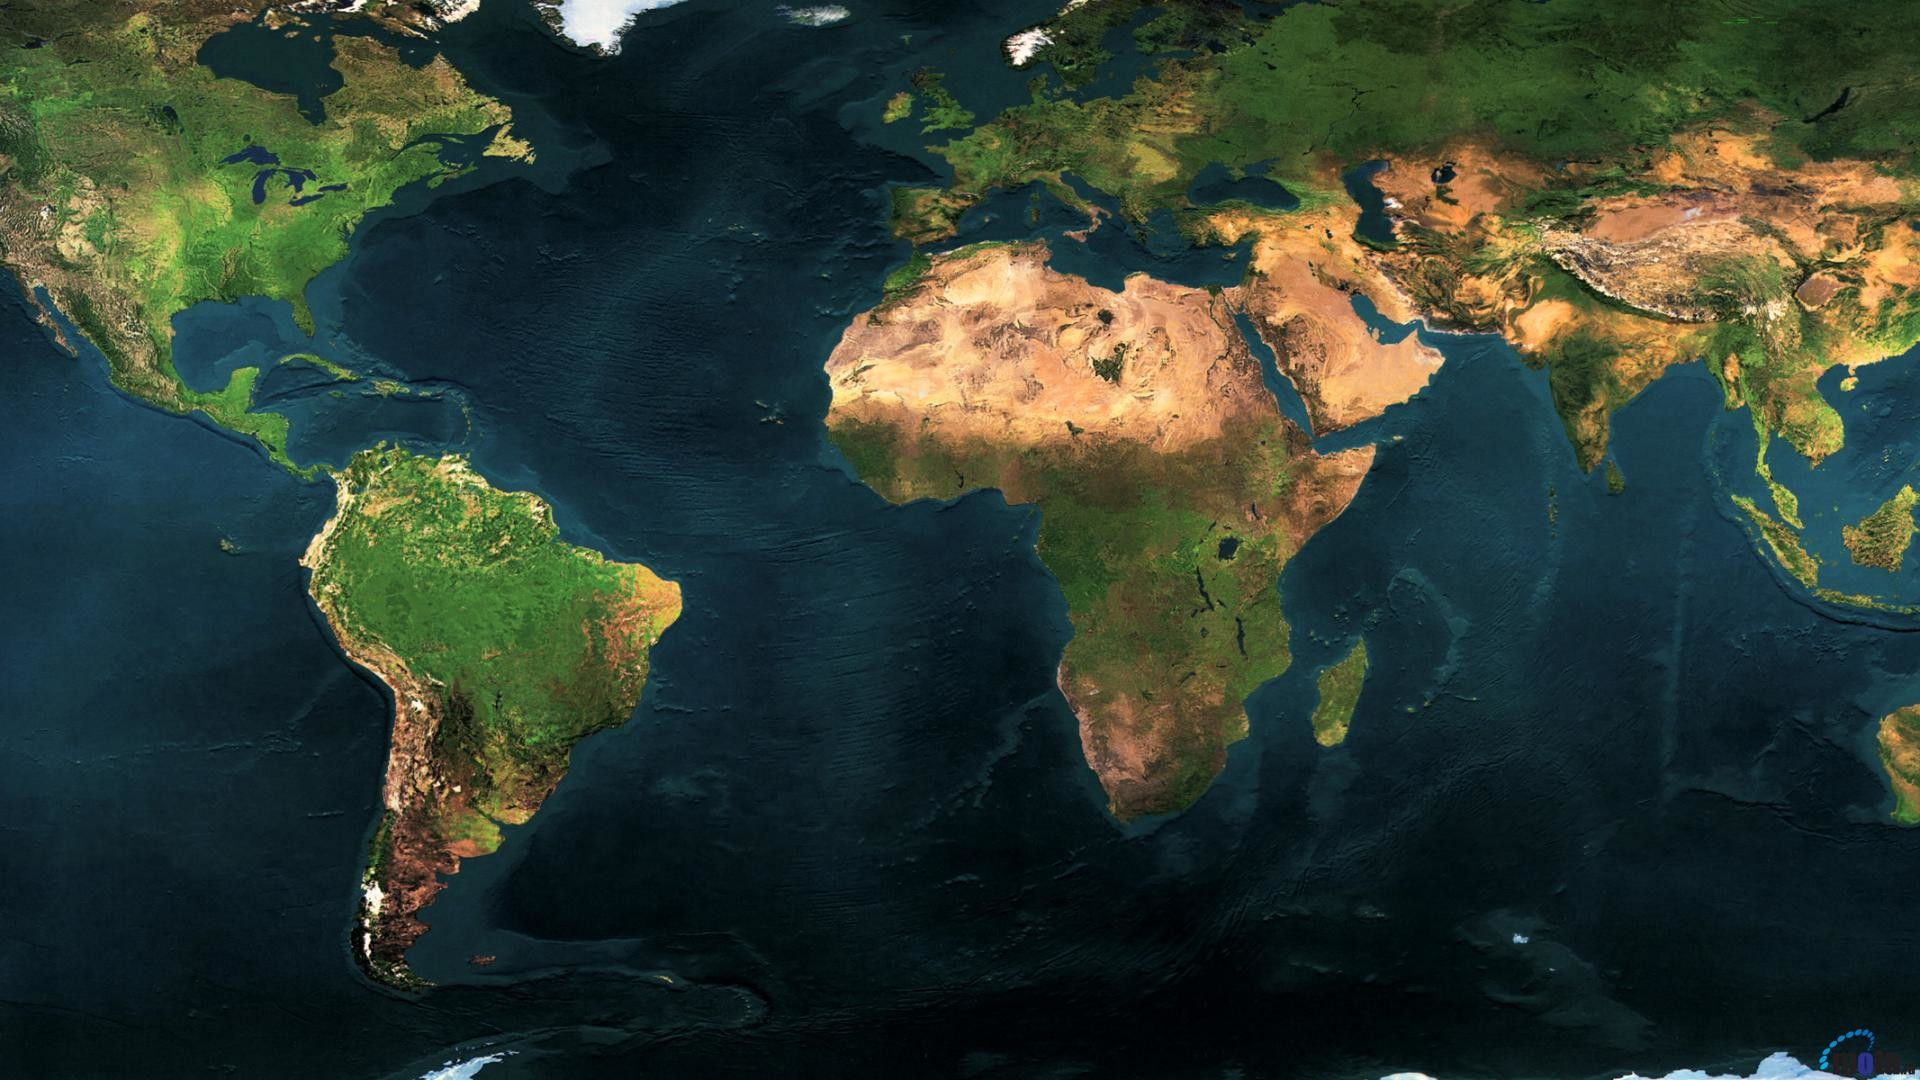 1920x1080 Download Wallpaper Earth Map Dual Monitor (1920 x 1080 HDTV 1080p .